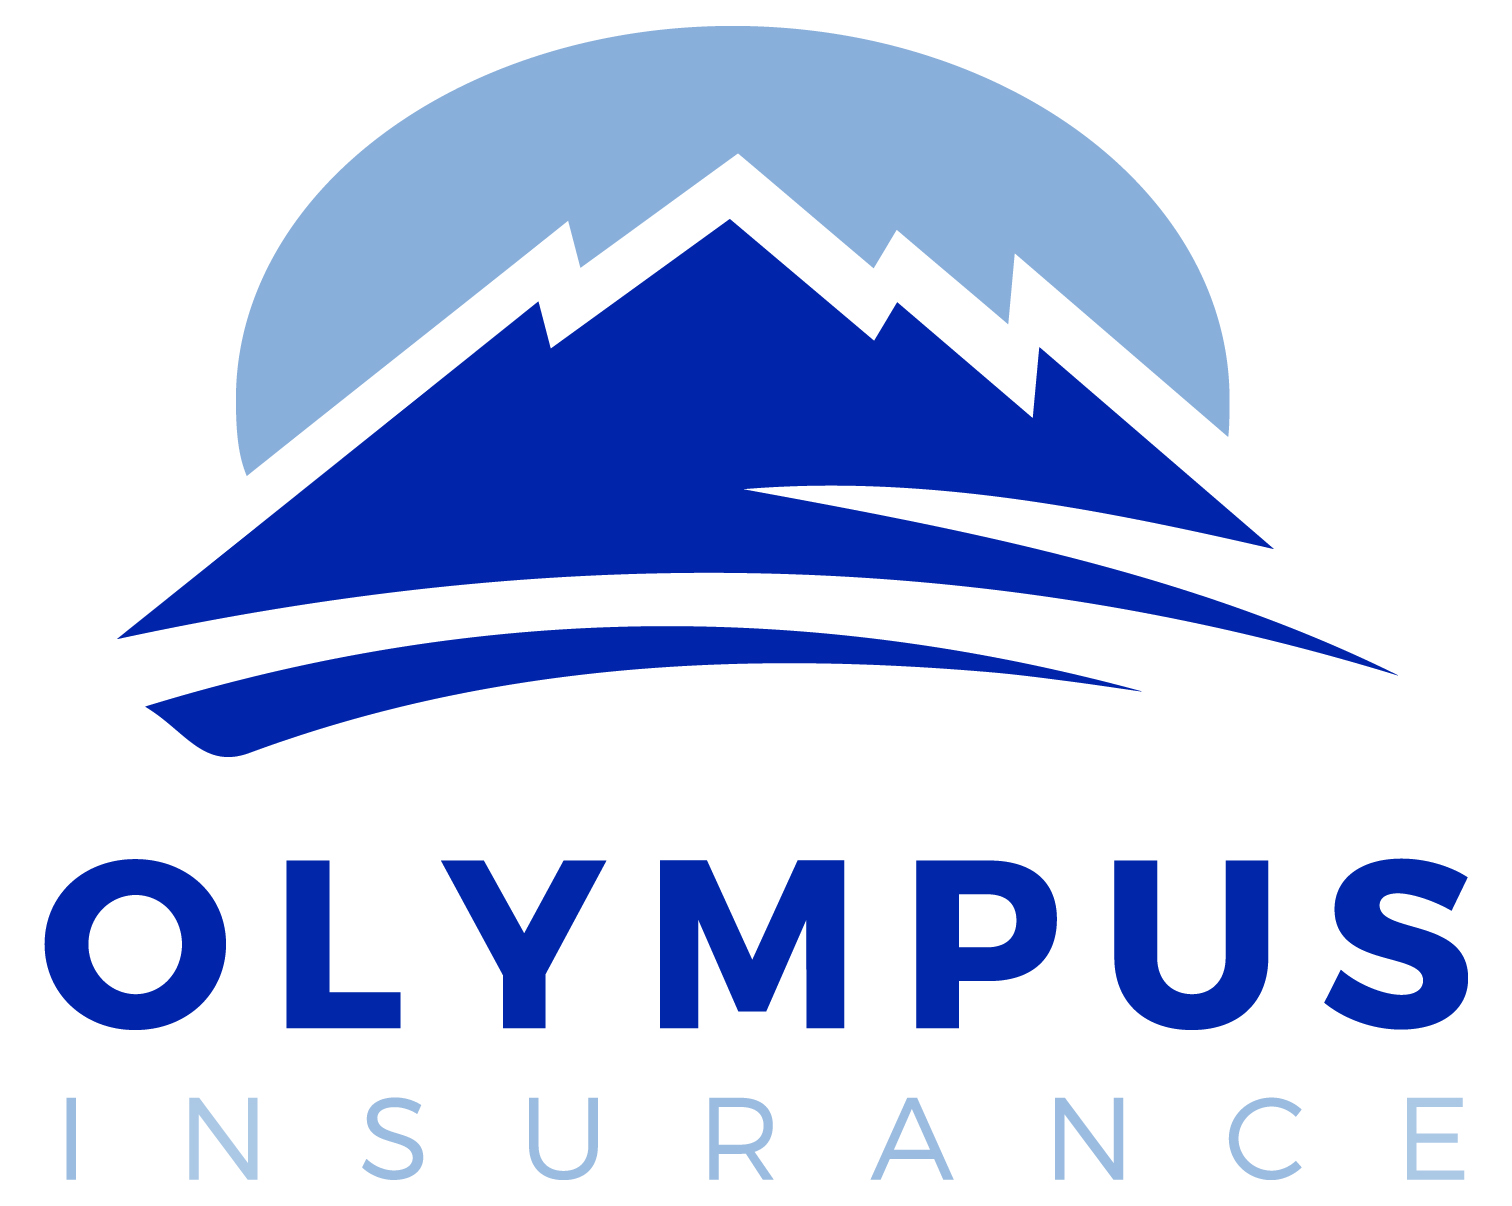 olympus logo (stacked)